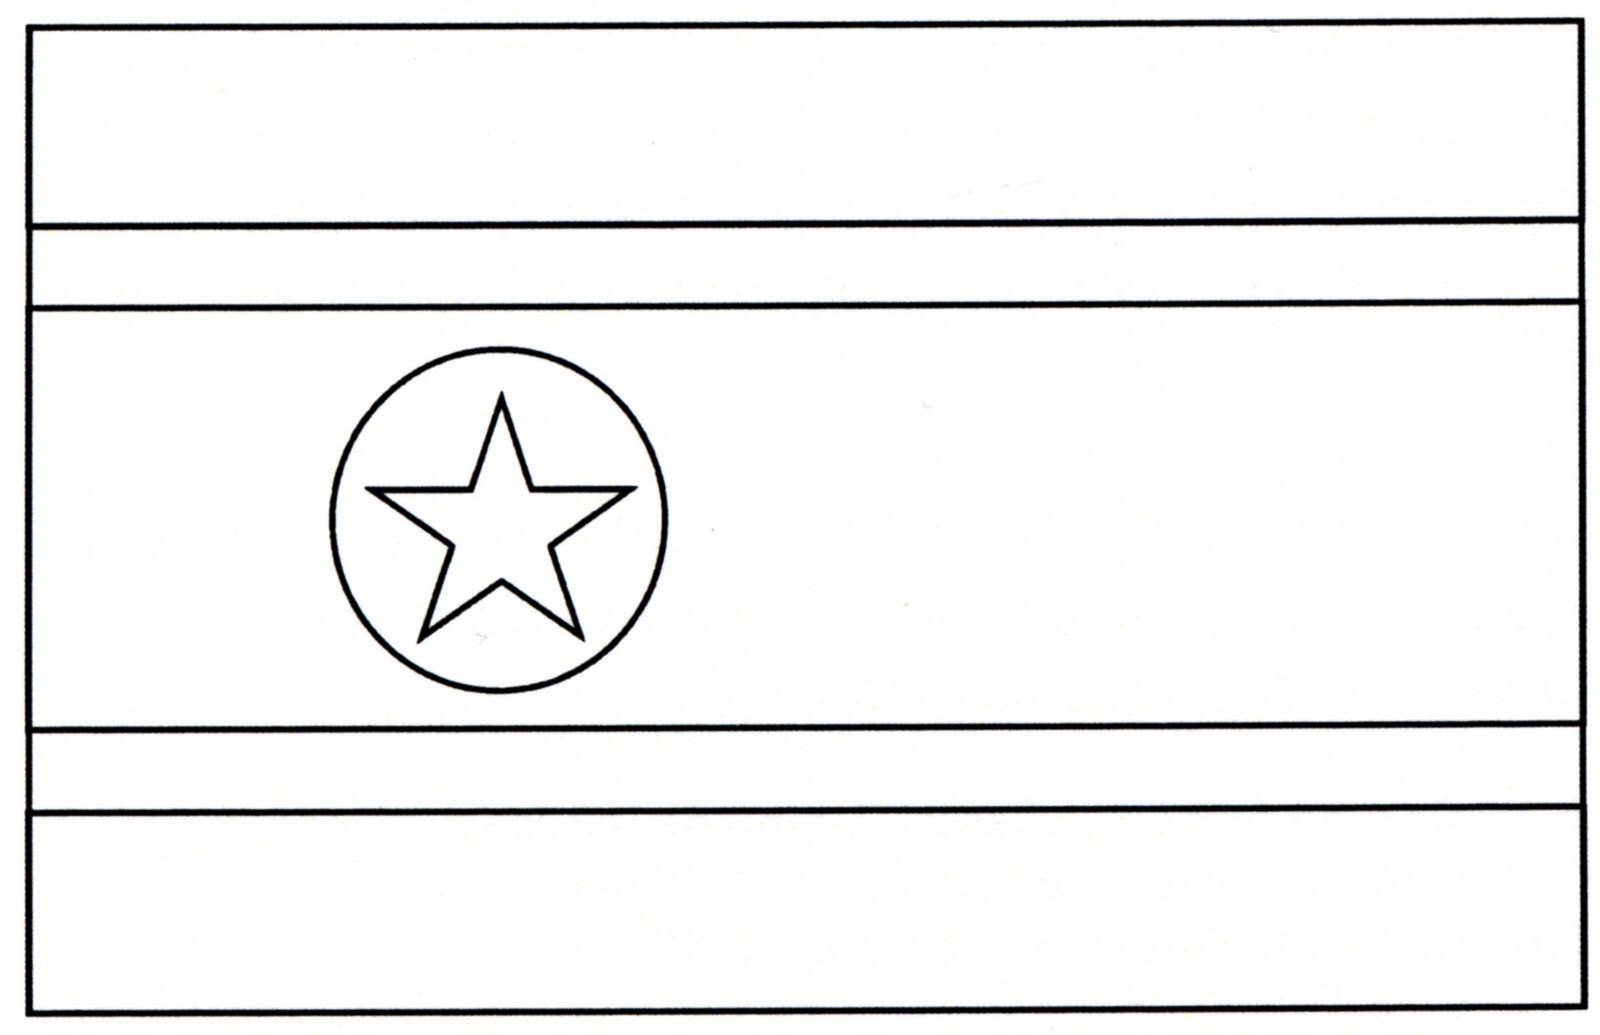 German Flag Coloring Page SomeBody Free Coloring